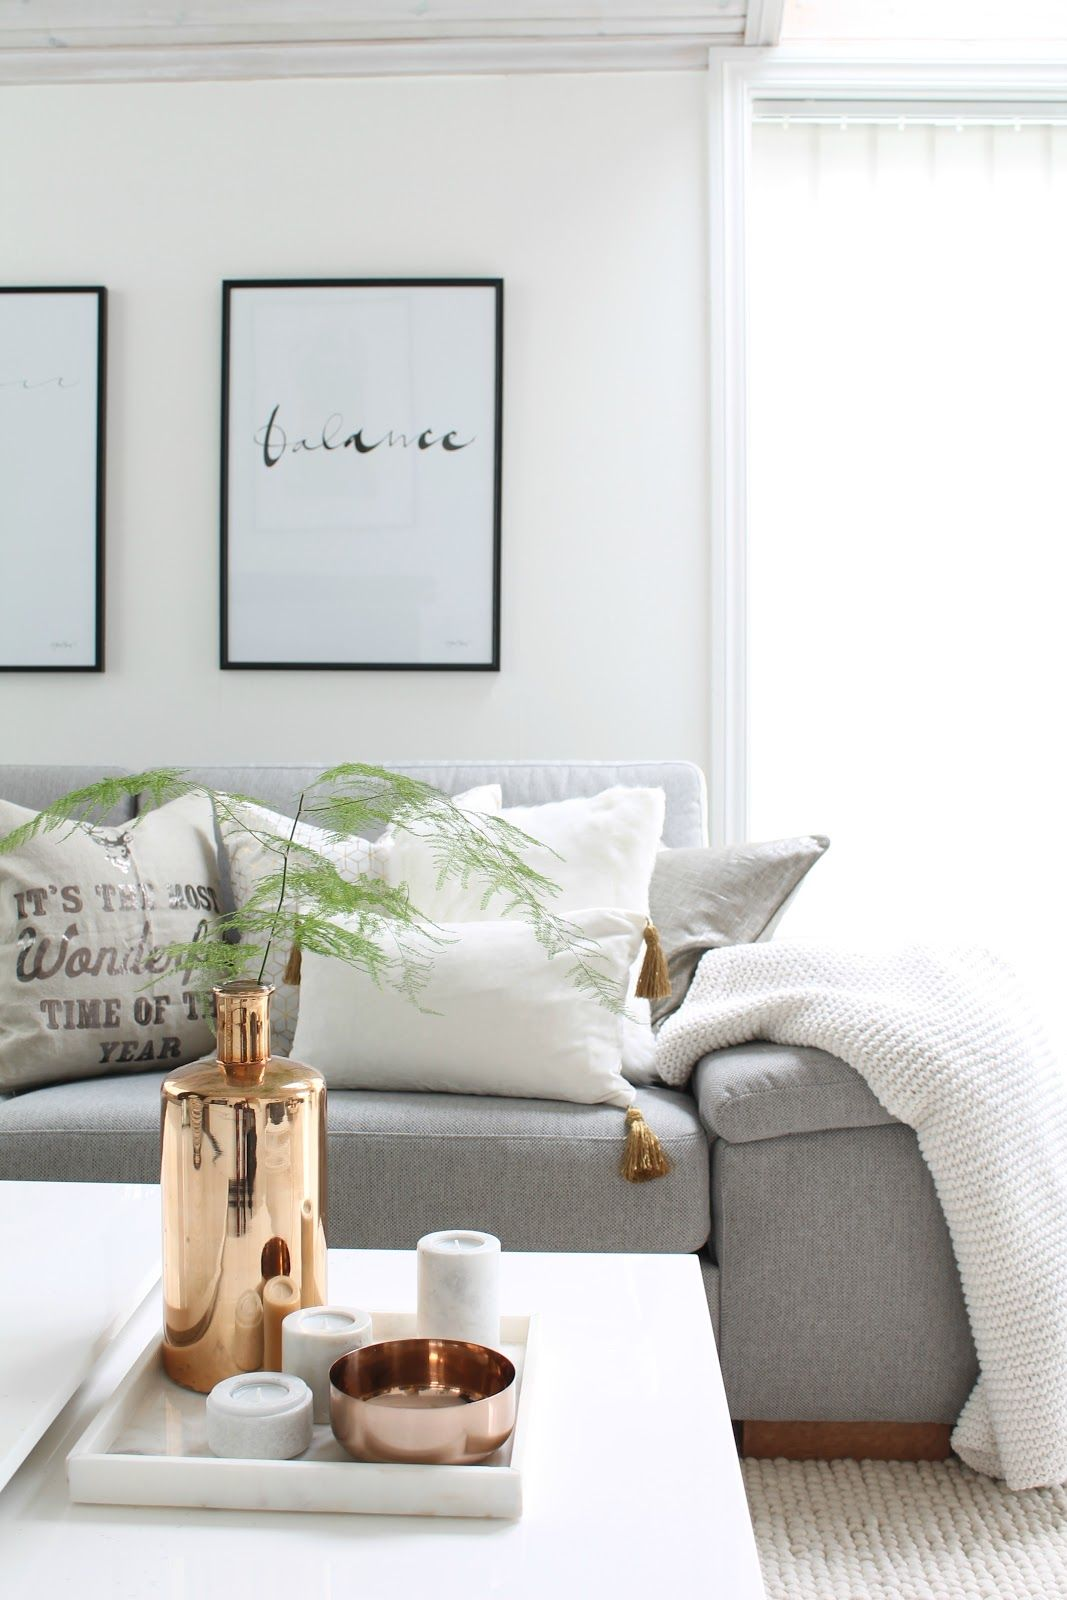 Puter Klare For Jul With Images Home Decor Affordable Home